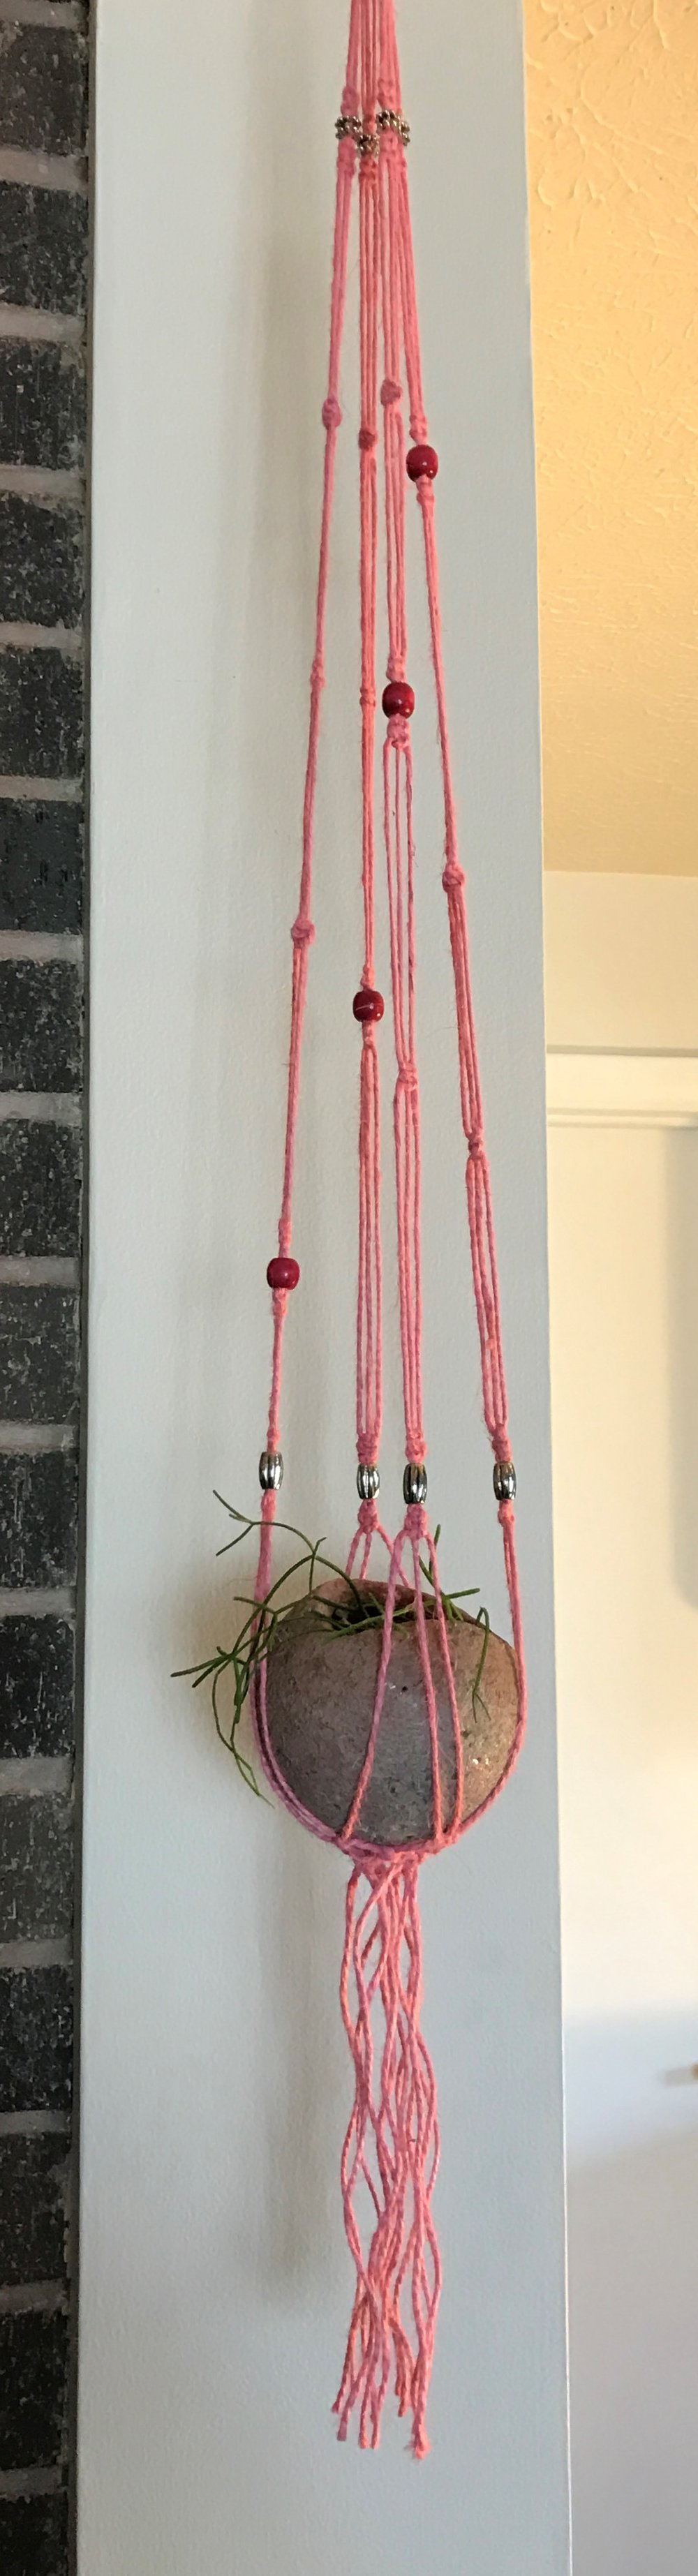 "4"" Sphere planter in jute macramé  hanger."